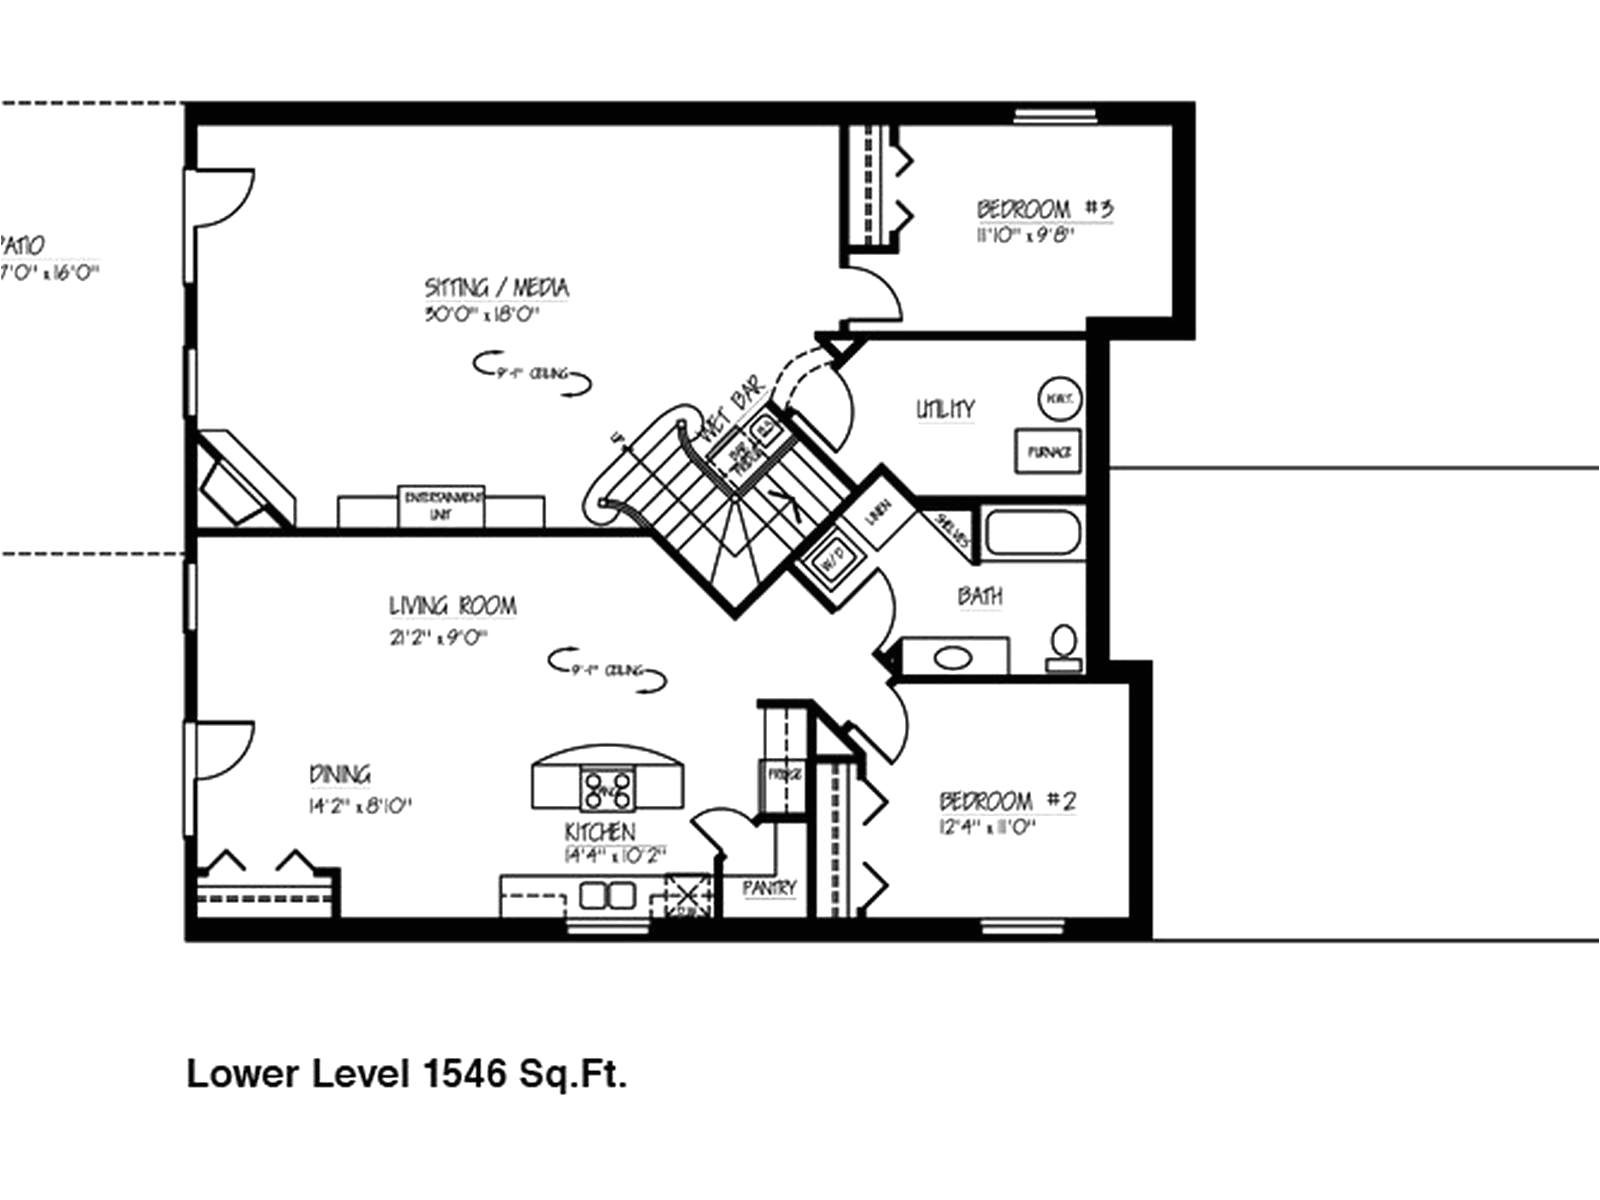 house plans customizable new how do you find floor plans an existing home luxury houses floor